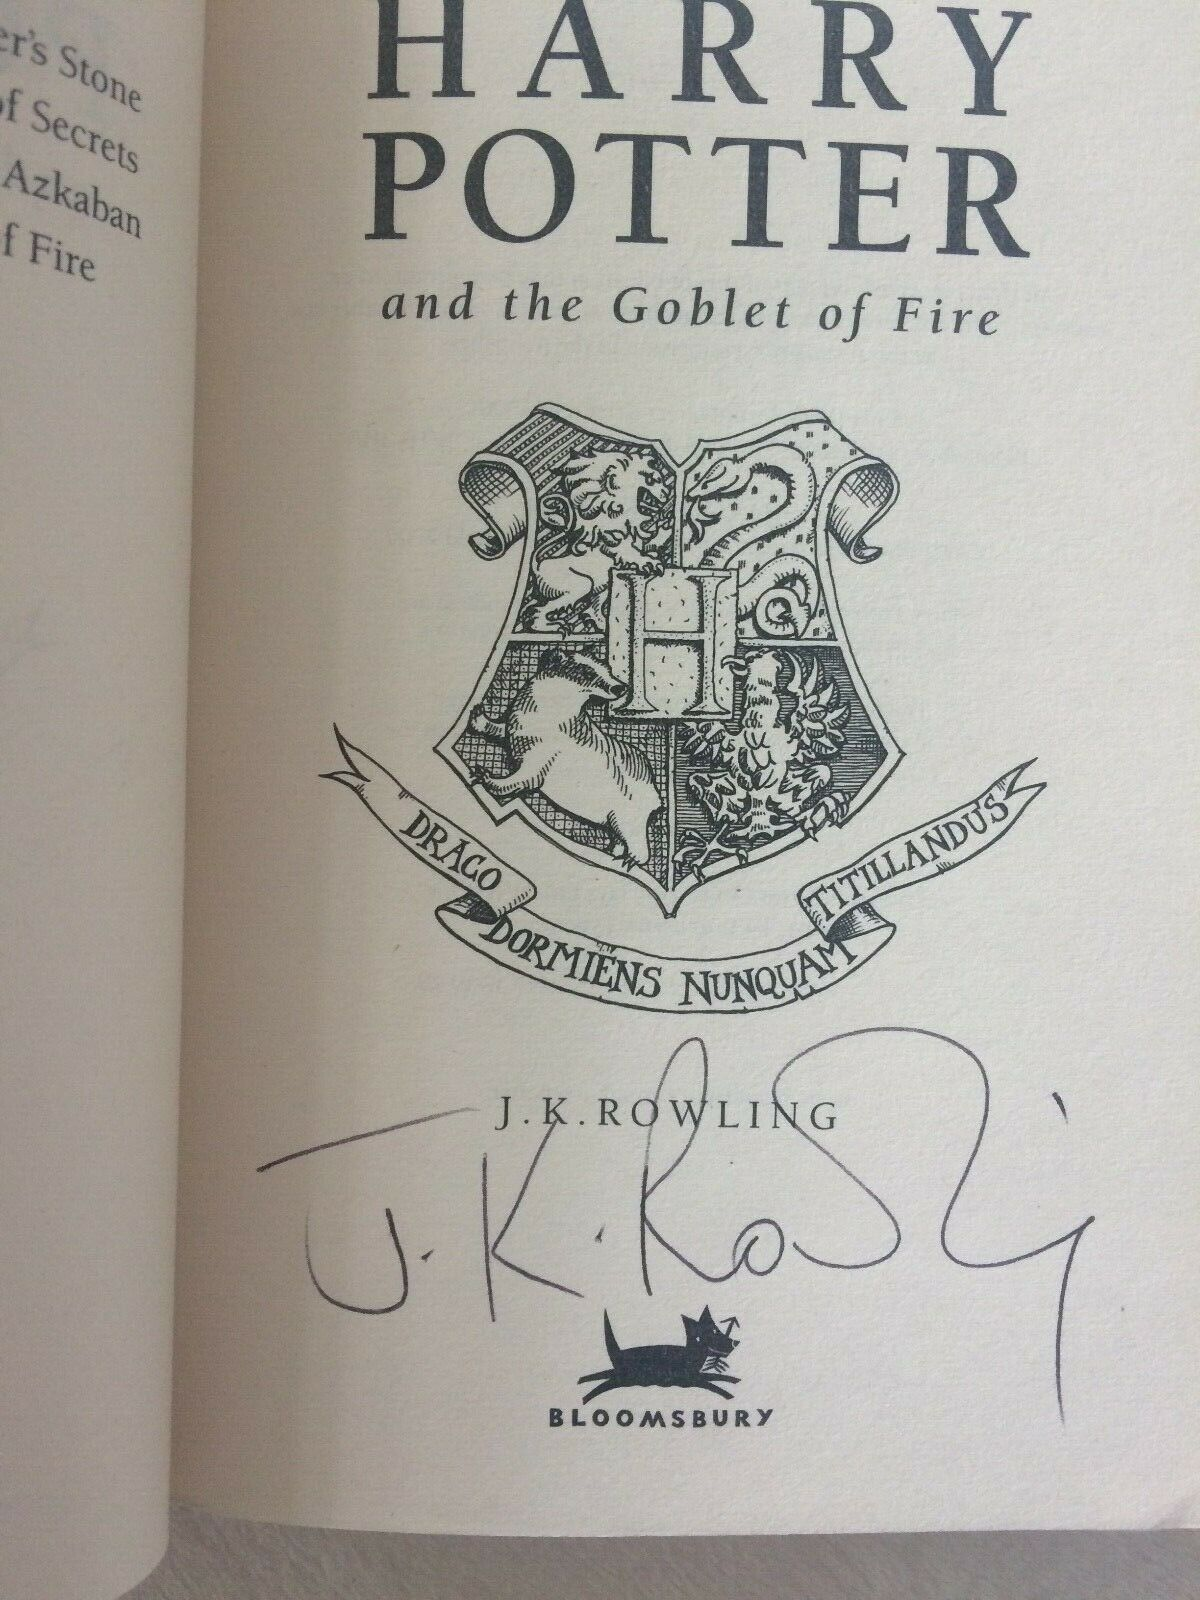 J.K. Rowling Forgery found inside a Bloomsbury UK Softcover Harry Potter and the Goblet of Fire